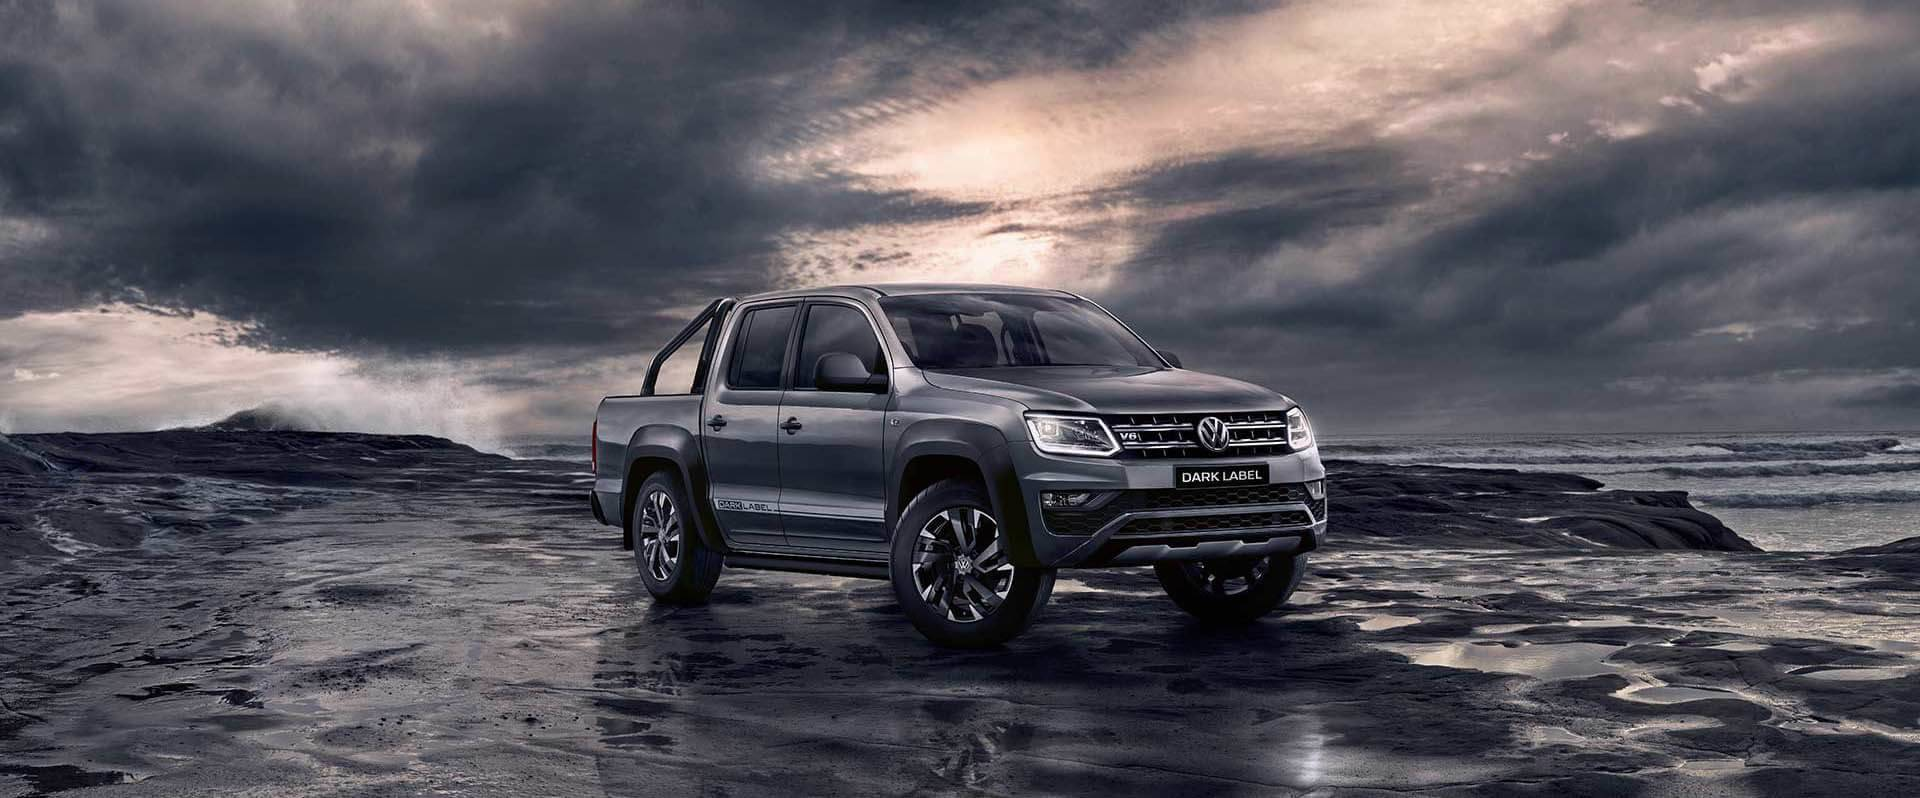 Amarok V6 Dark Label